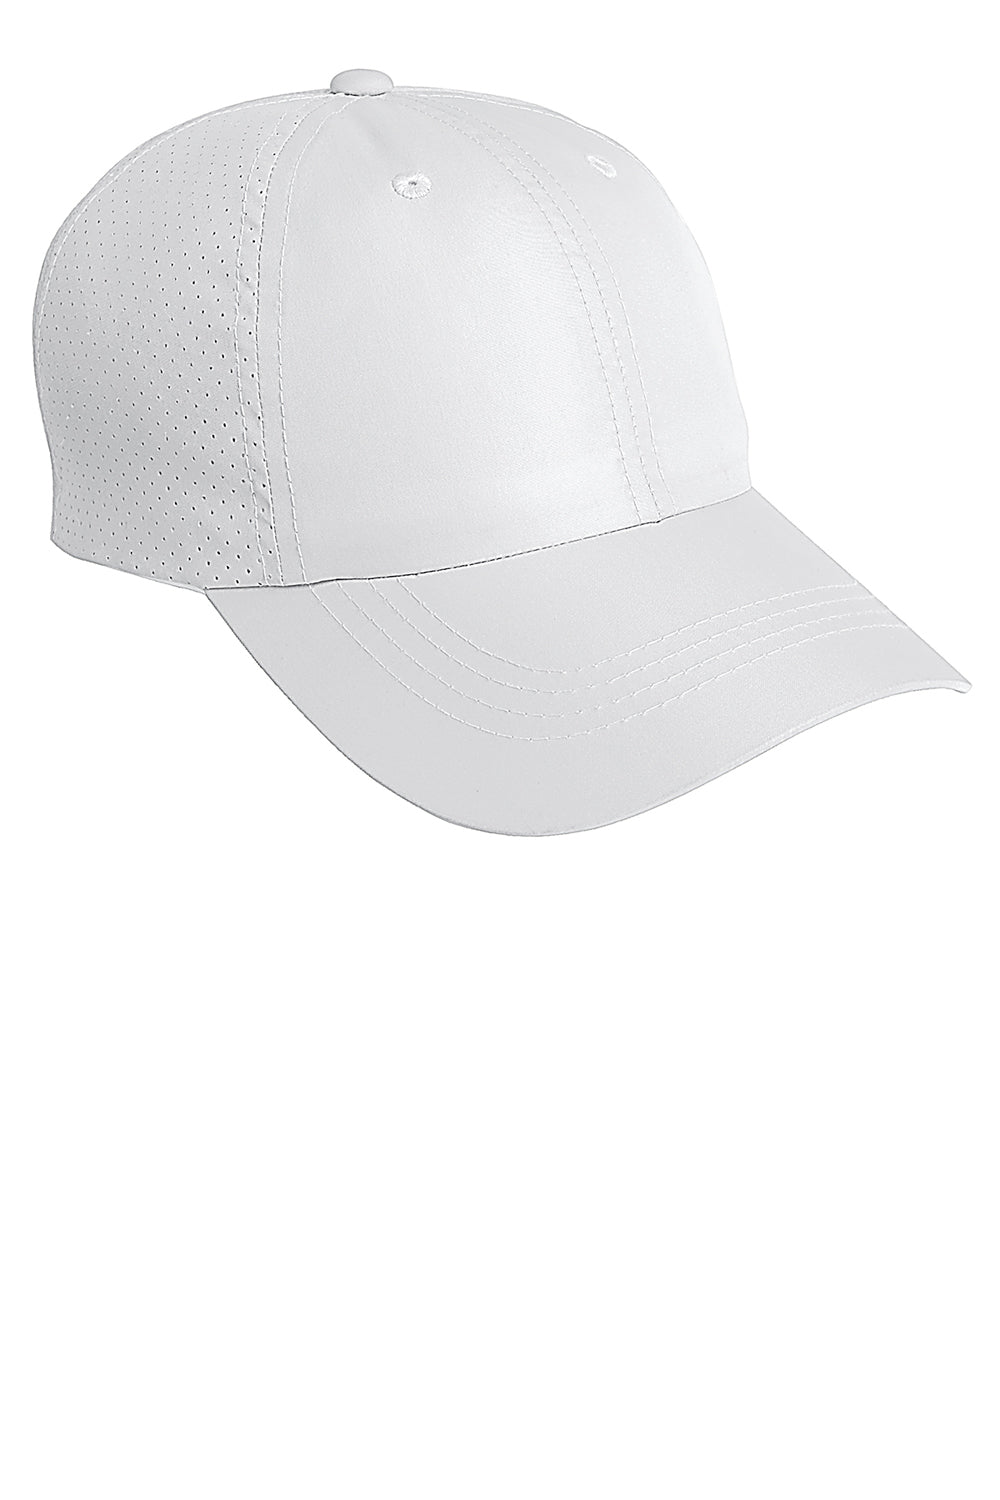 Port Authority C821 Mens Moisture Wicking Adjustable Hat White Front